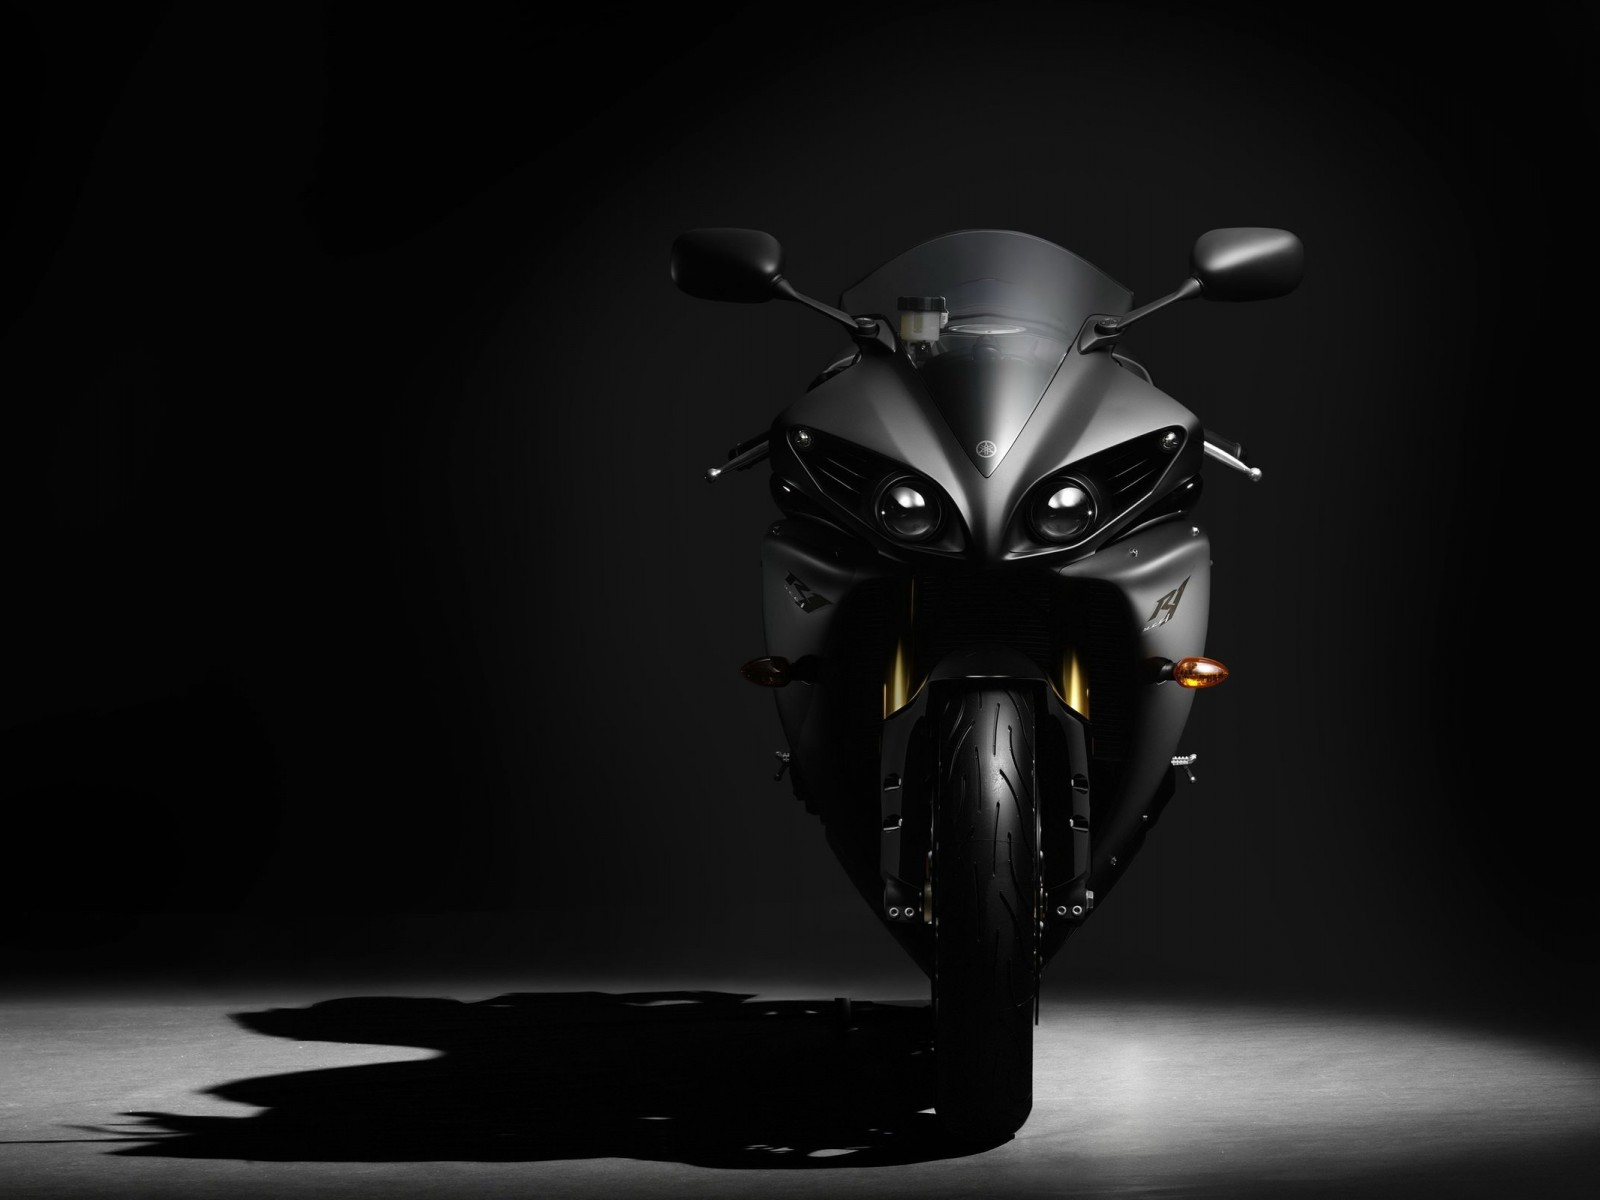 Yamaha Yzf R1 Wallpaper for Desktop 1600x1200